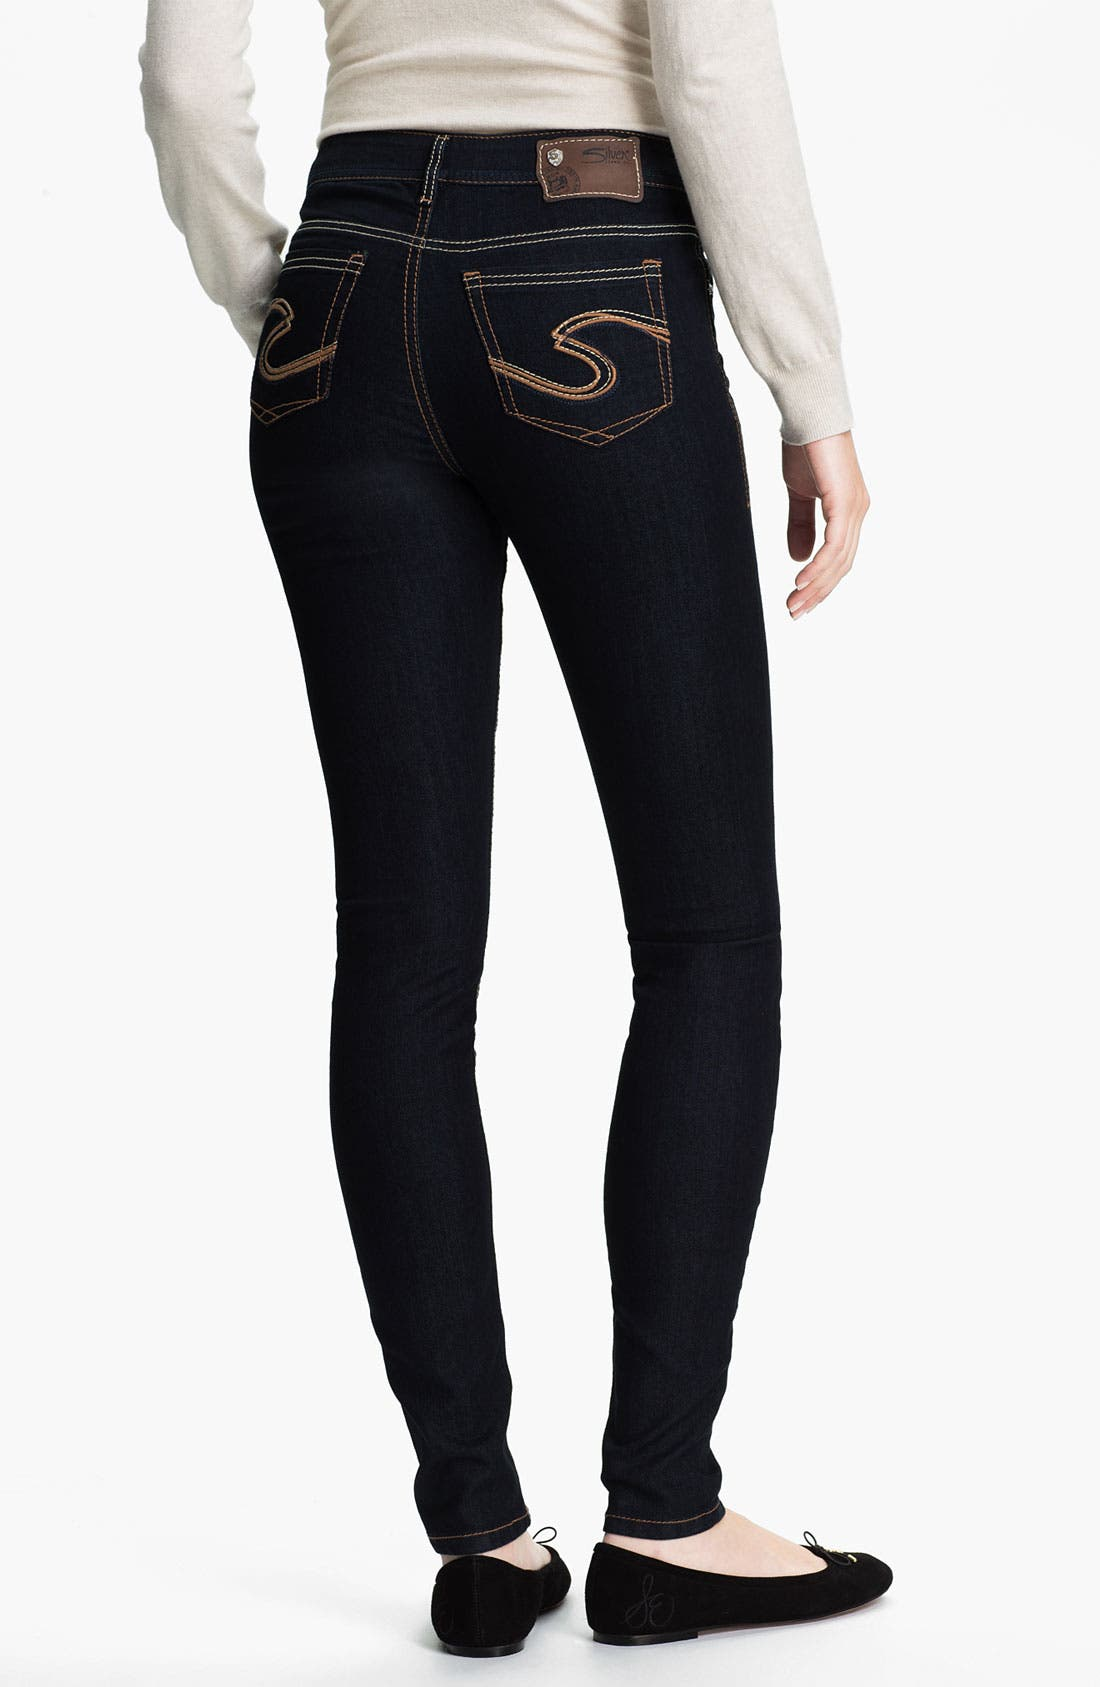 Alternate Image 1 Selected - Silver Jeans Co. Skinny Jeans (Juniors)